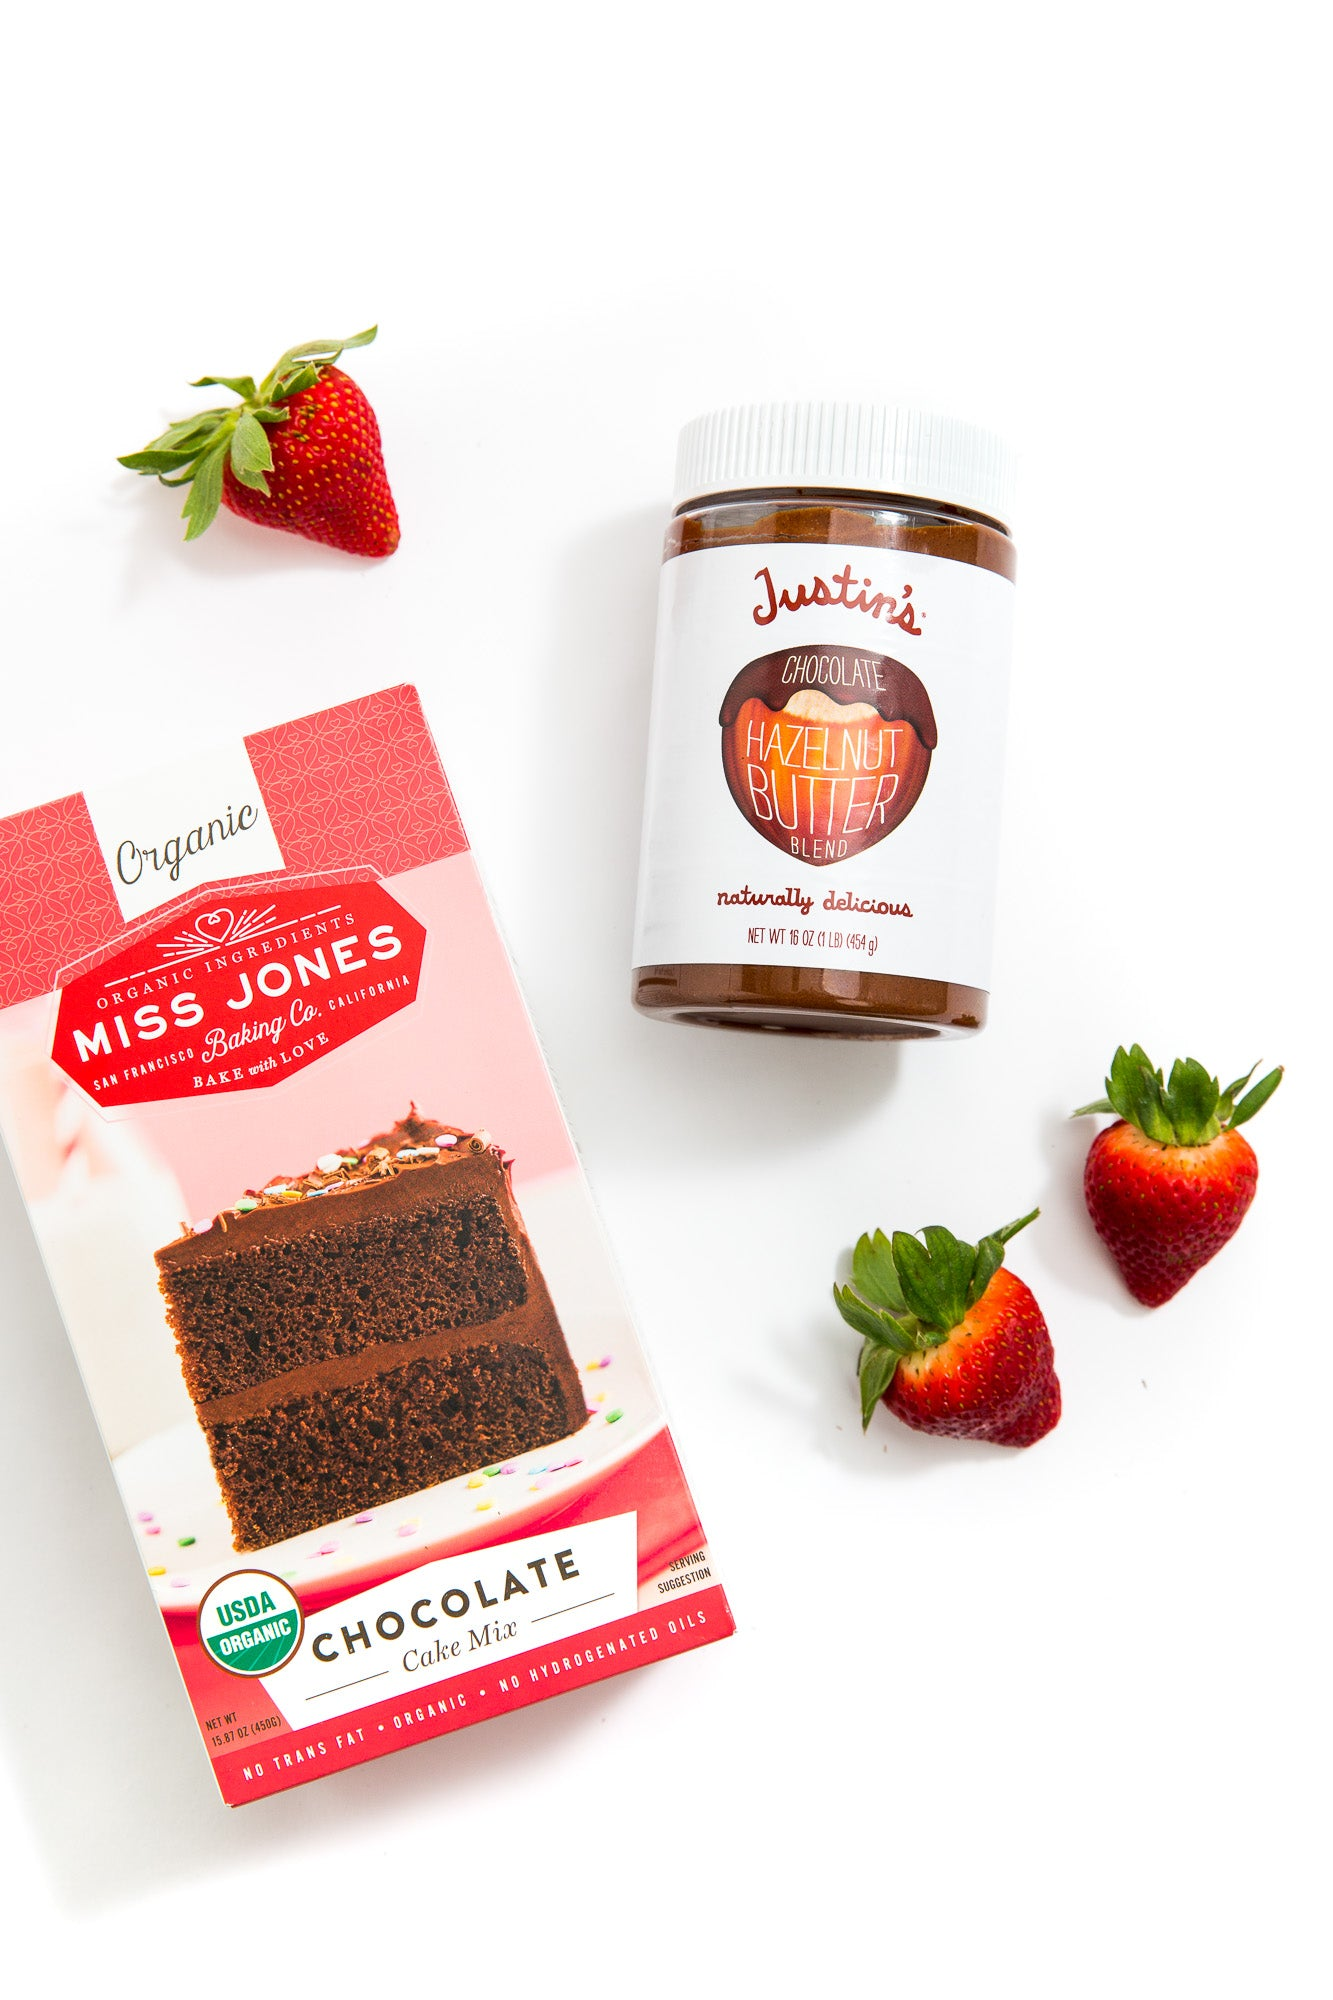 Top view of Miss Jones Baking Organic Chocolate Cake Mix, a couple of strawberries and a tub of Justin's Chocolate Hazelnut butter used for Miss Jones Baking Co Chocolate Hazelnut Strawberry Cupcakes recipe